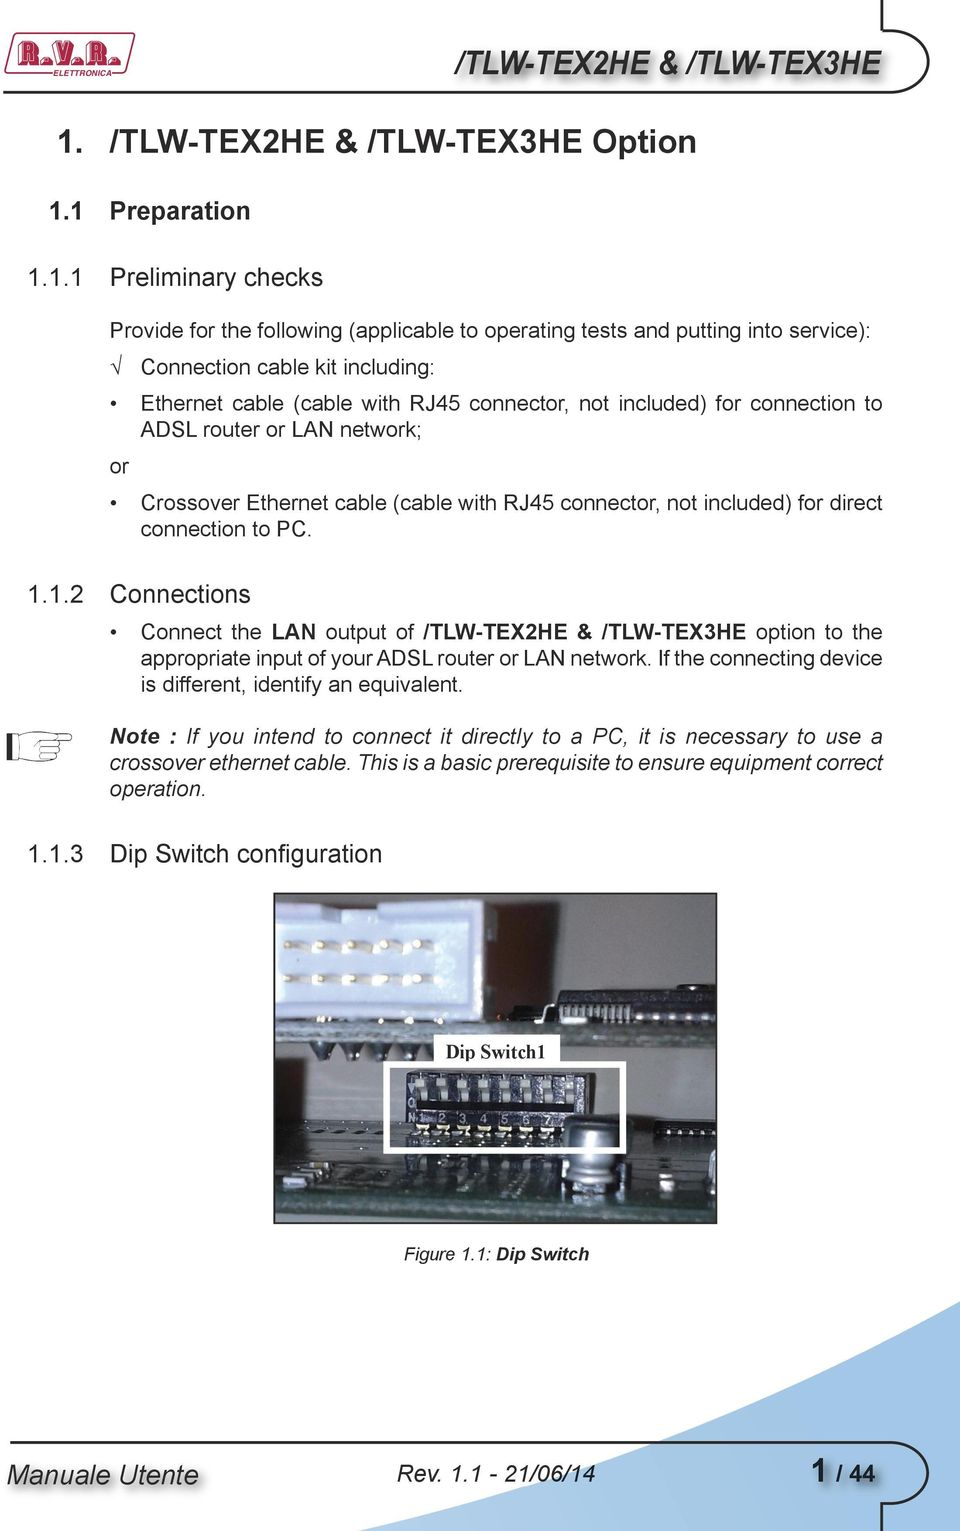 1 Preparation 1.1.1 Preliminary checks Provide for the following (applicable to operating tests and putting into service): Connection cable kit including: Ethernet cable (cable with RJ45 connector,